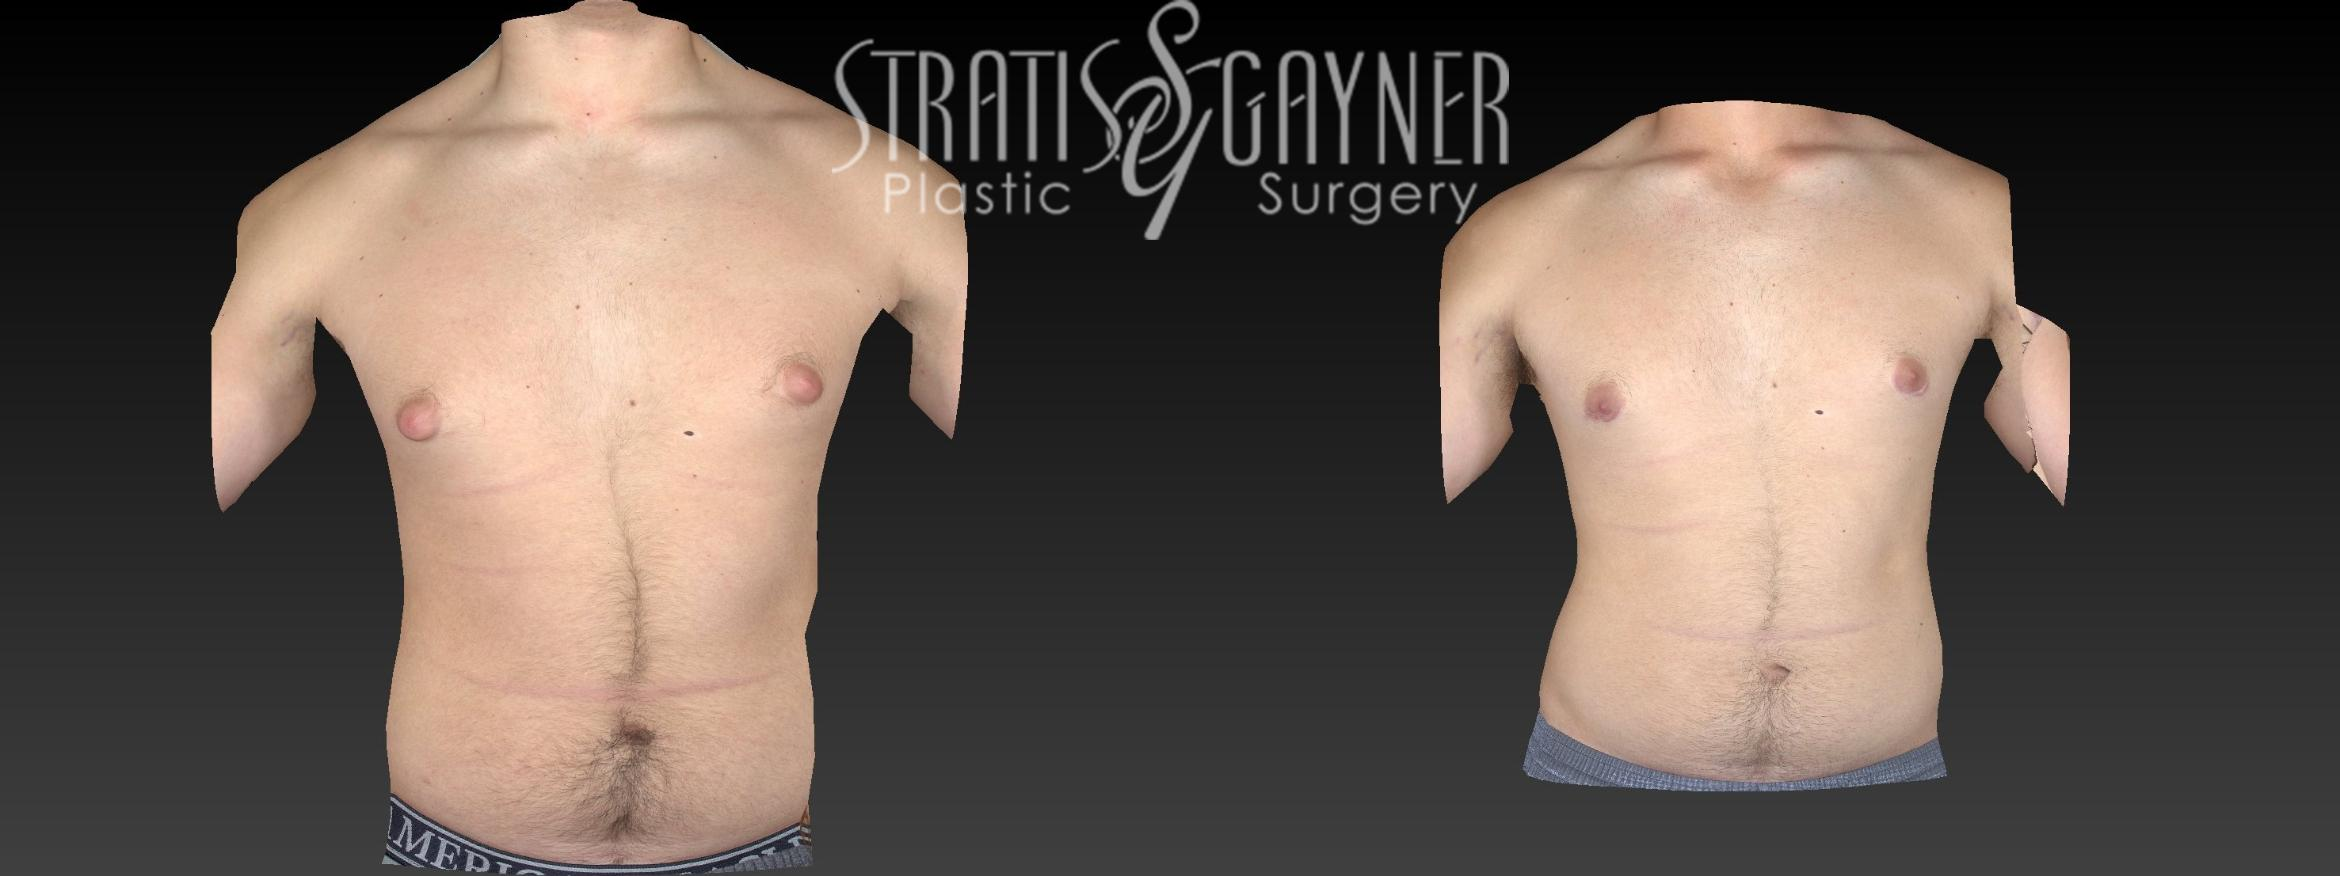 Male Breast Reduction Case 46 Before & After View #1 | Harrisburg, PA | Stratis Gayner Plastic Surgery